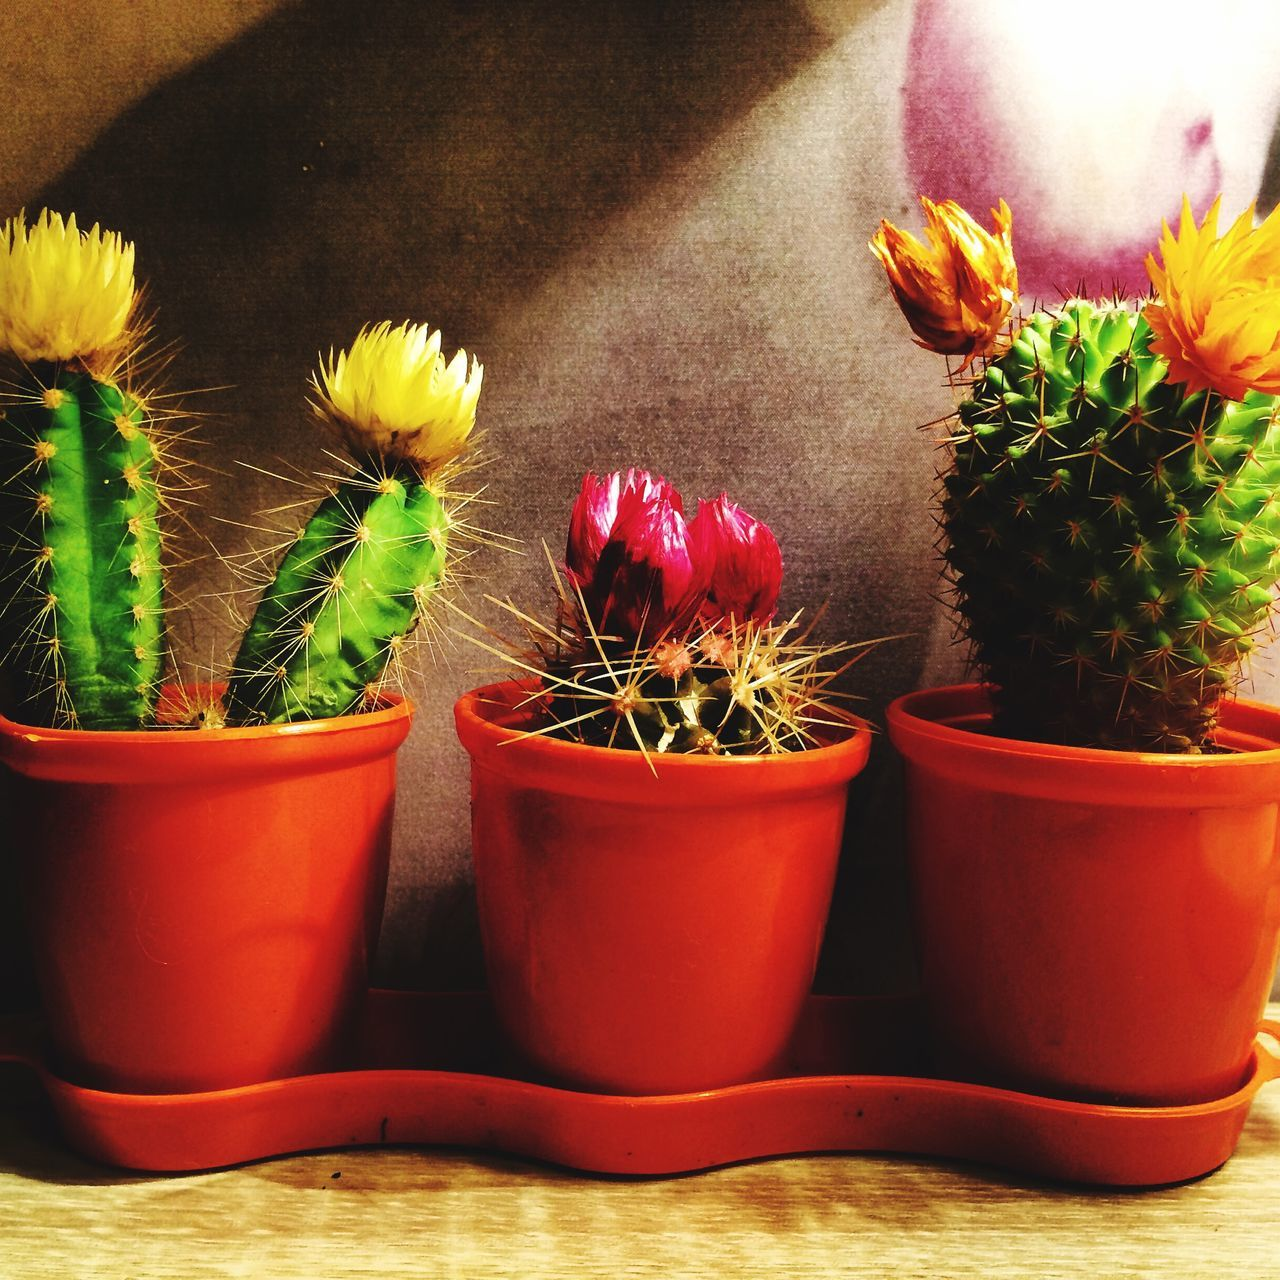 Potted Cactus Flowers On Floor At Home